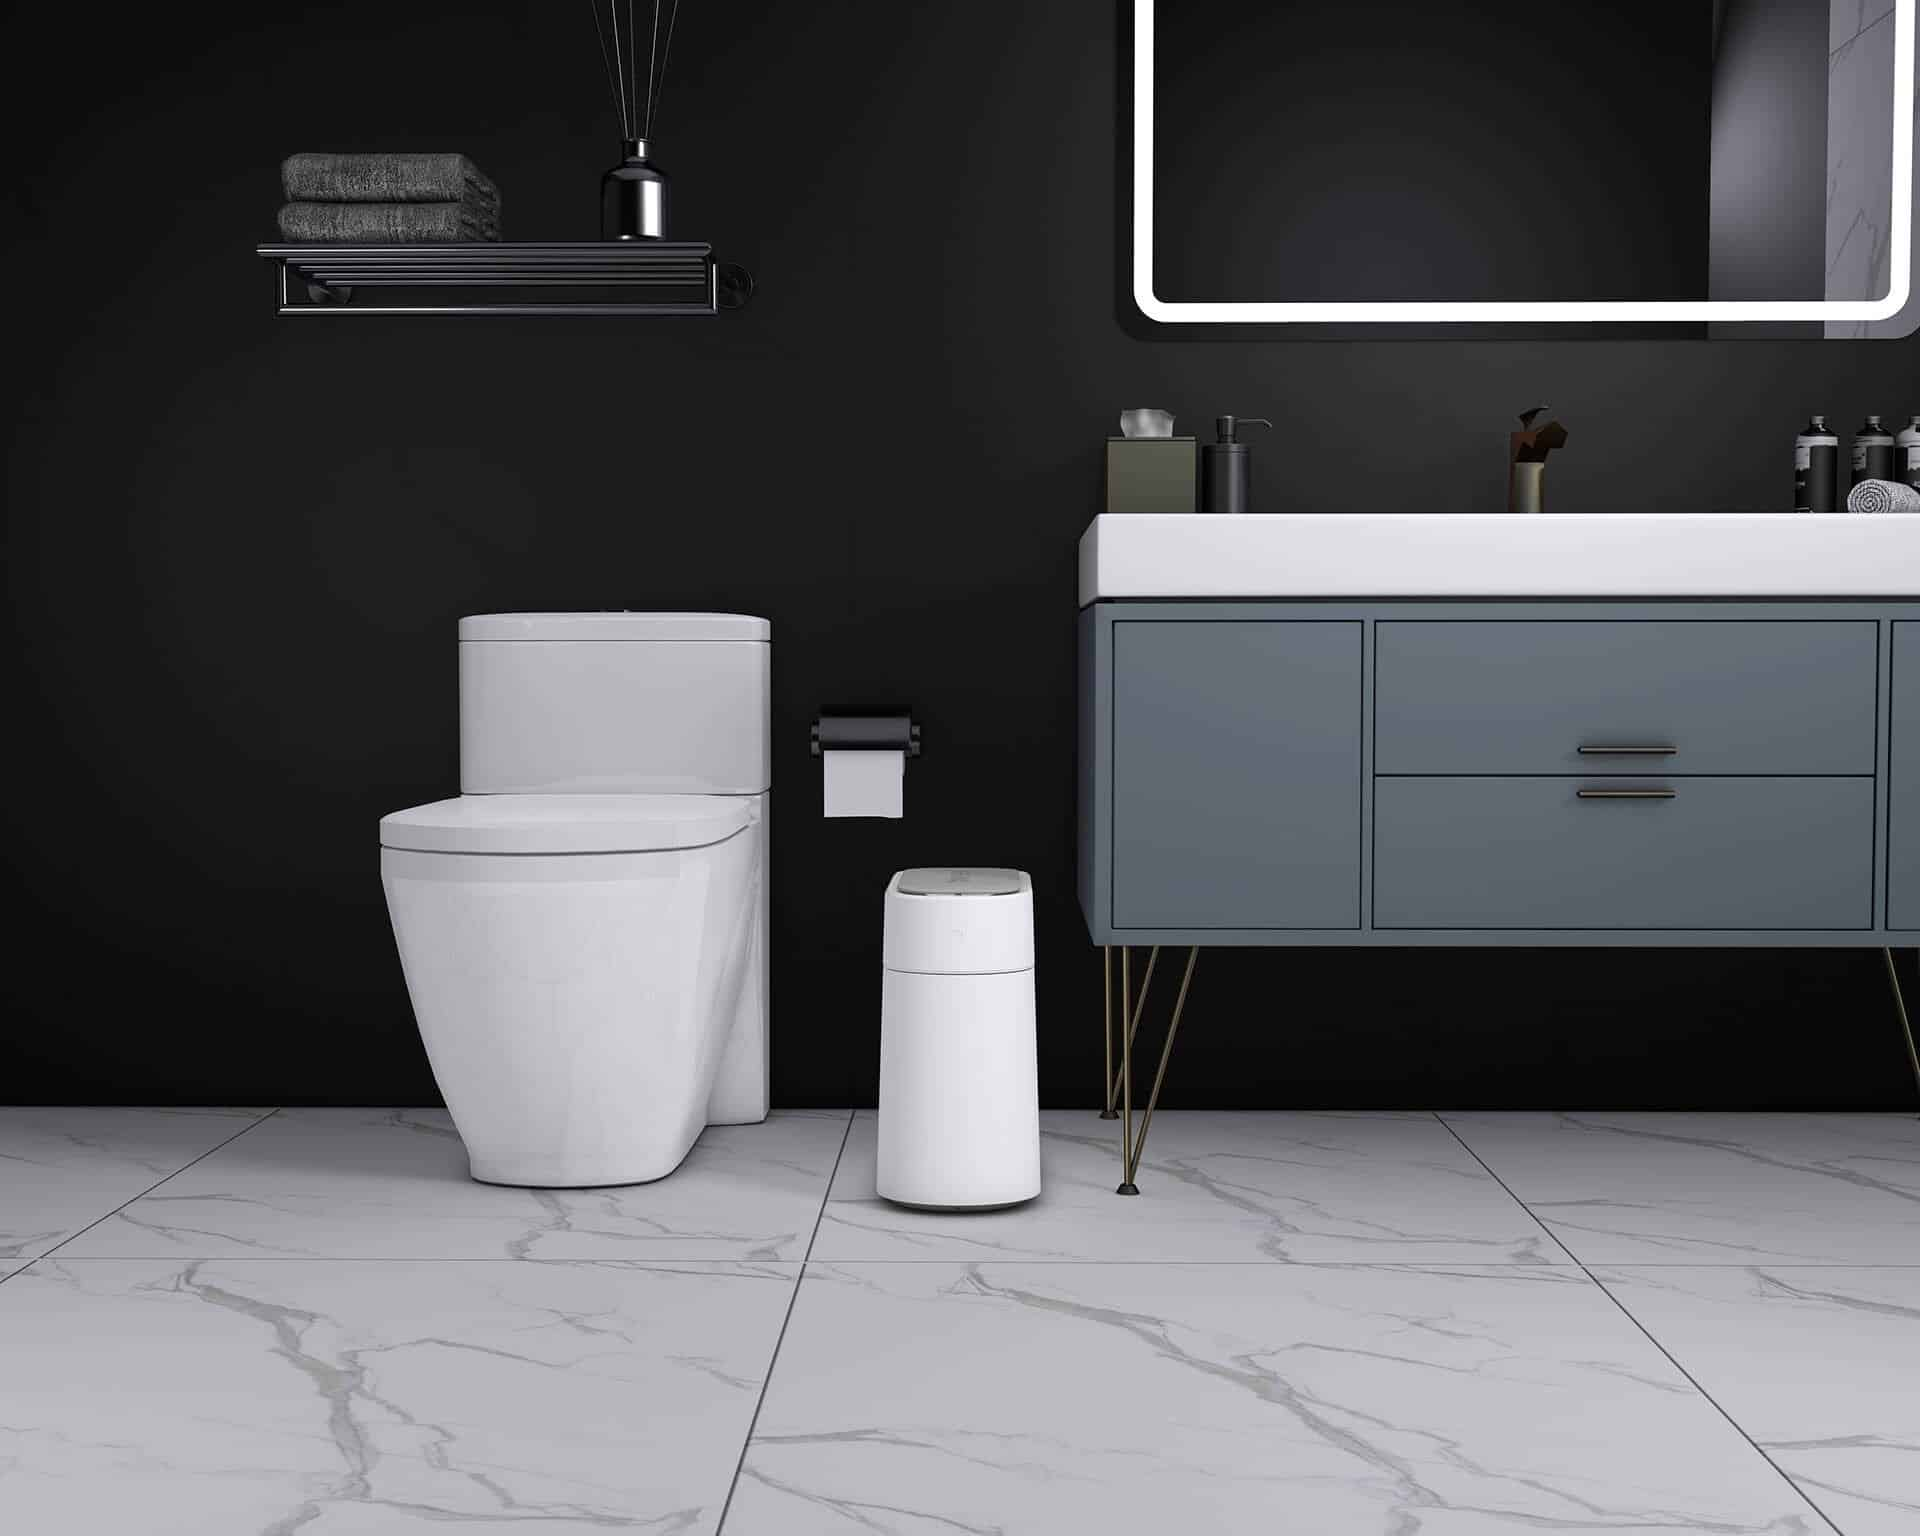 T3 smart trash can in bathroom